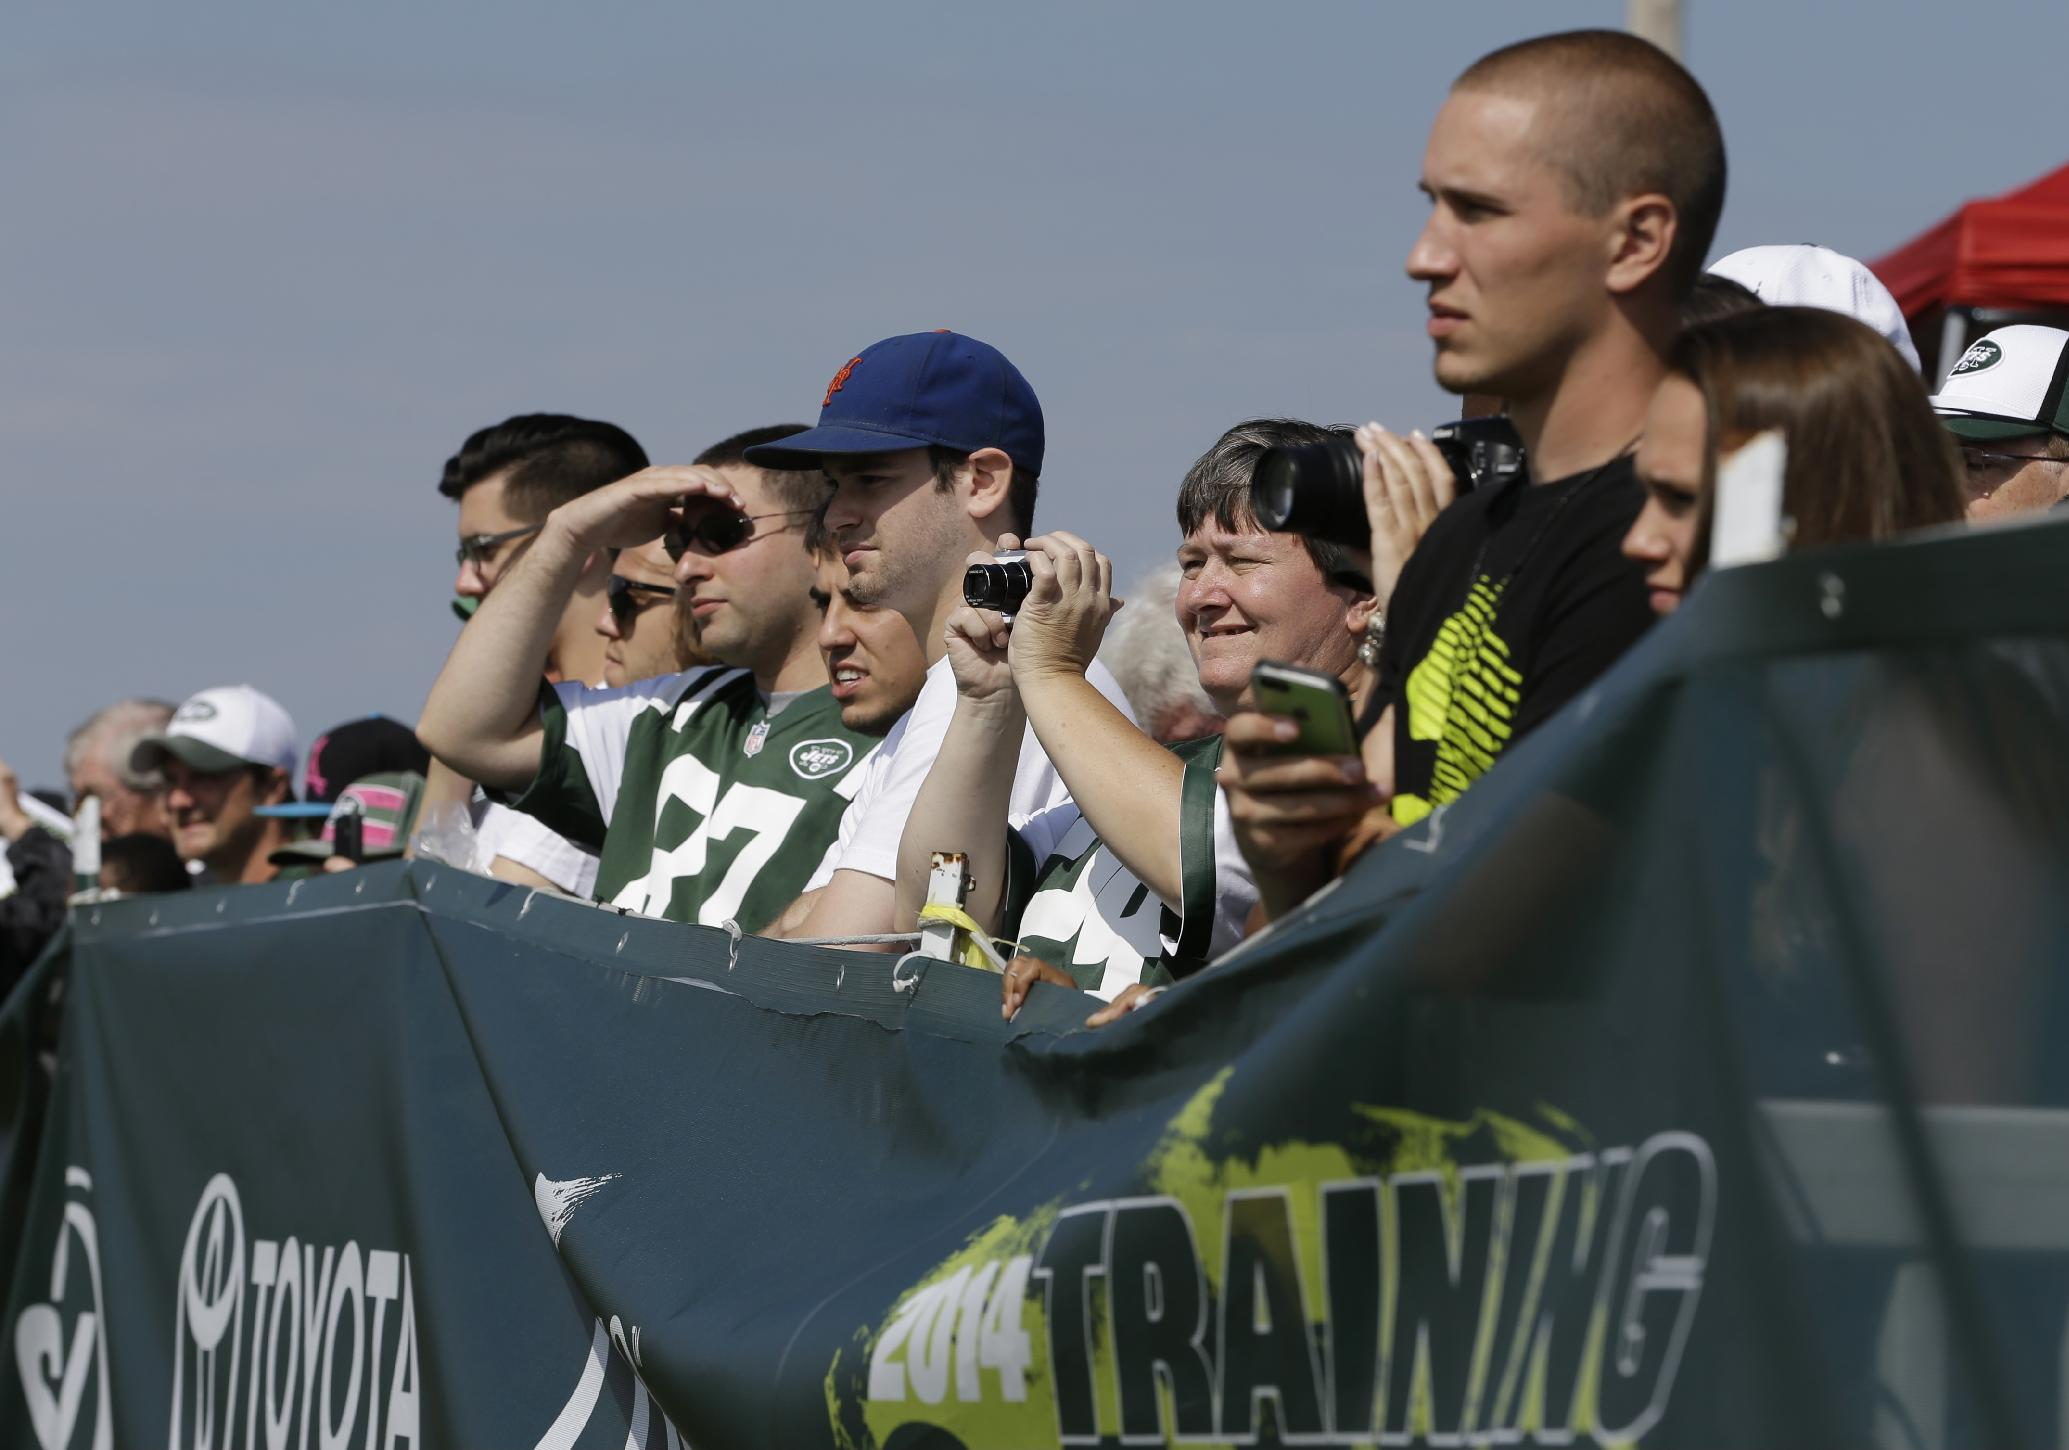 New York Jets fans watch practice during NFL football training camp Saturday, July 26, 2014, in Cortland, N.Y